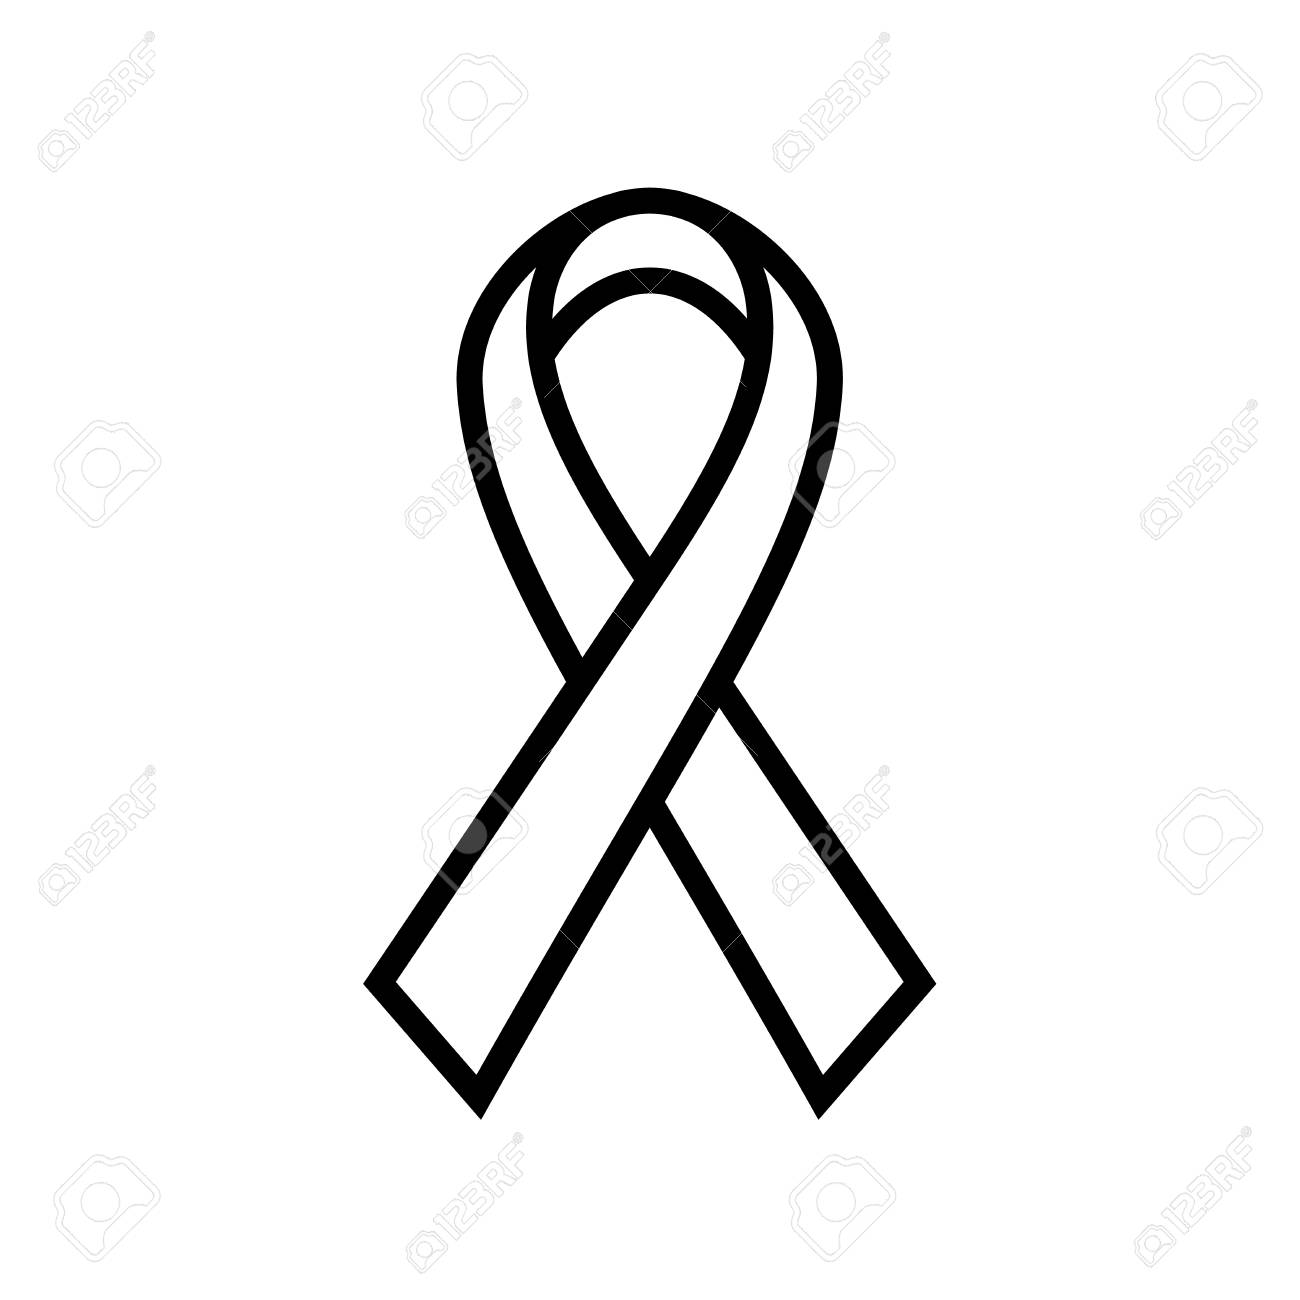 Breast Cancer Awareness Ribbon icon. Symbol of women healthcare.